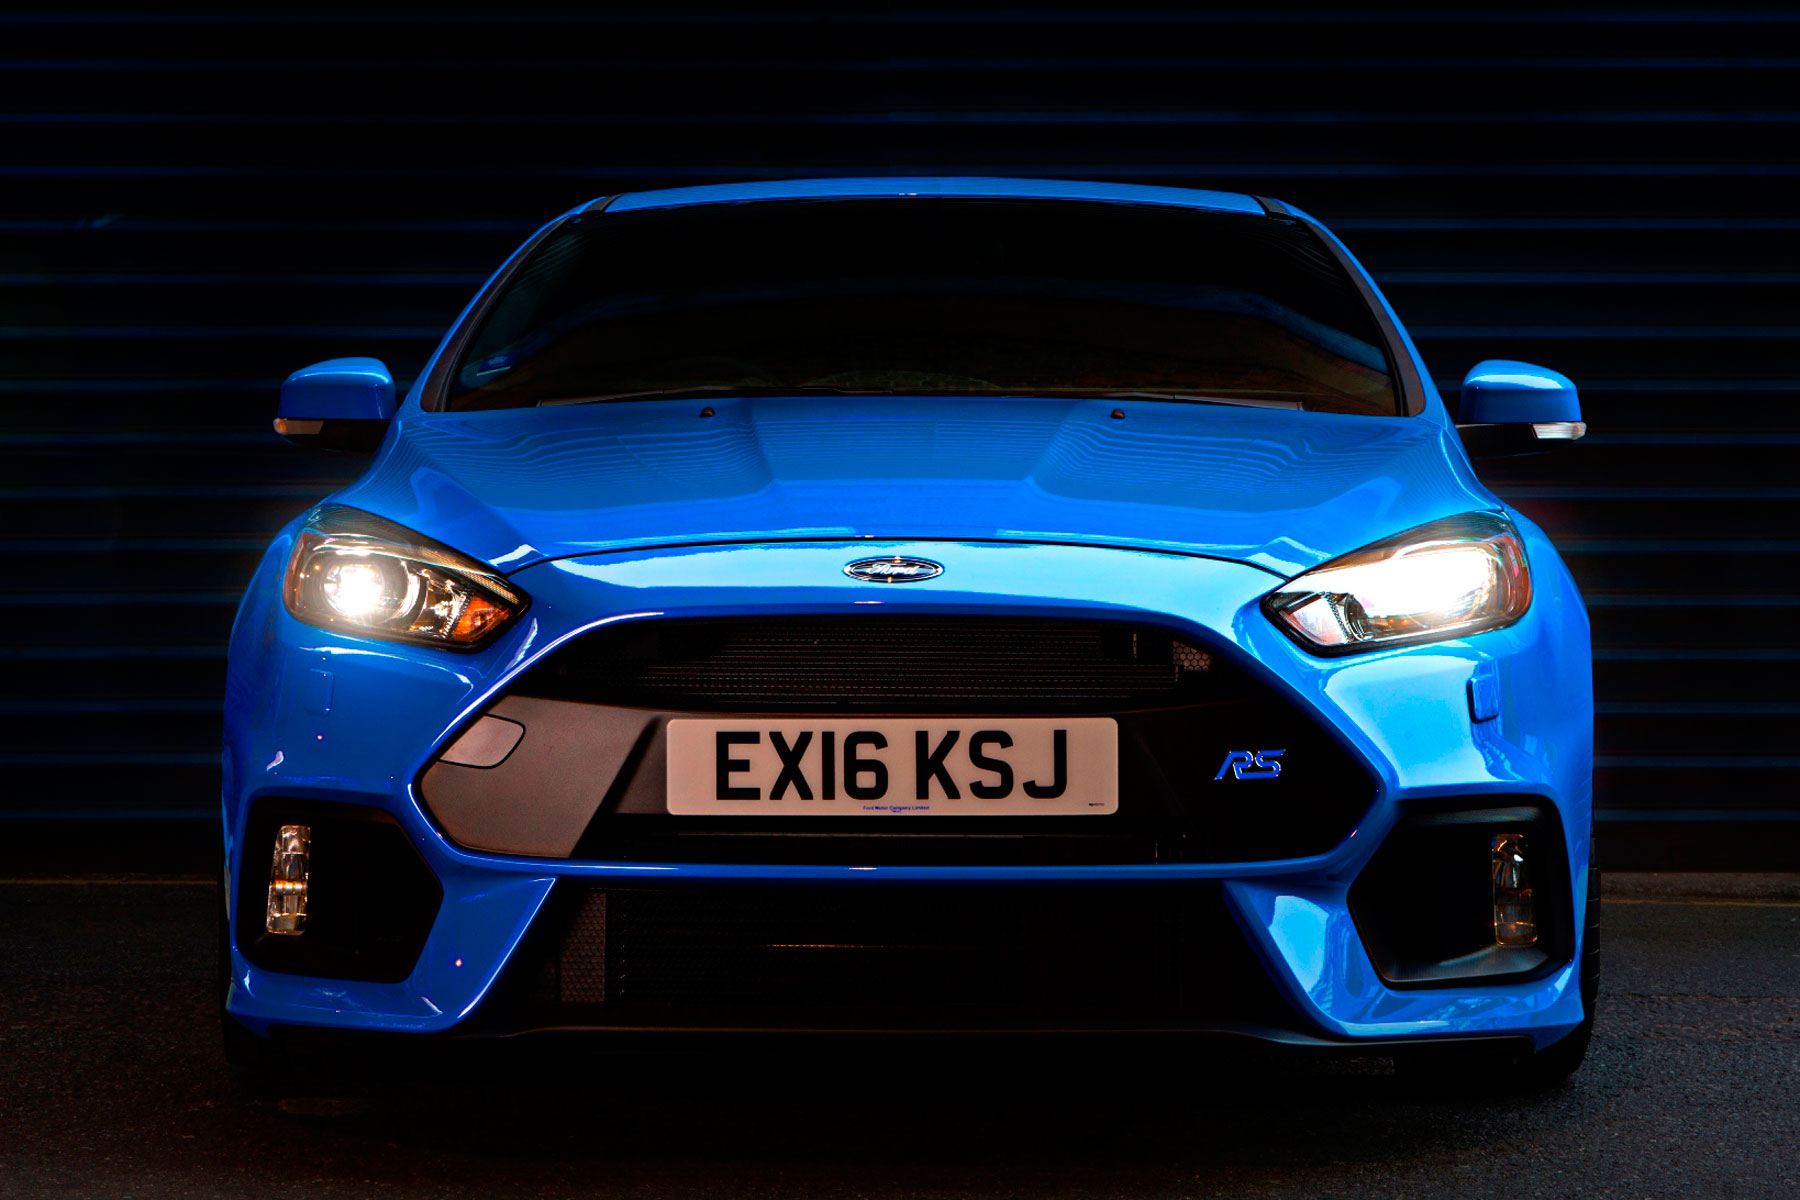 ford focus rs too slow mountune has a performance pack for that motoring research. Black Bedroom Furniture Sets. Home Design Ideas